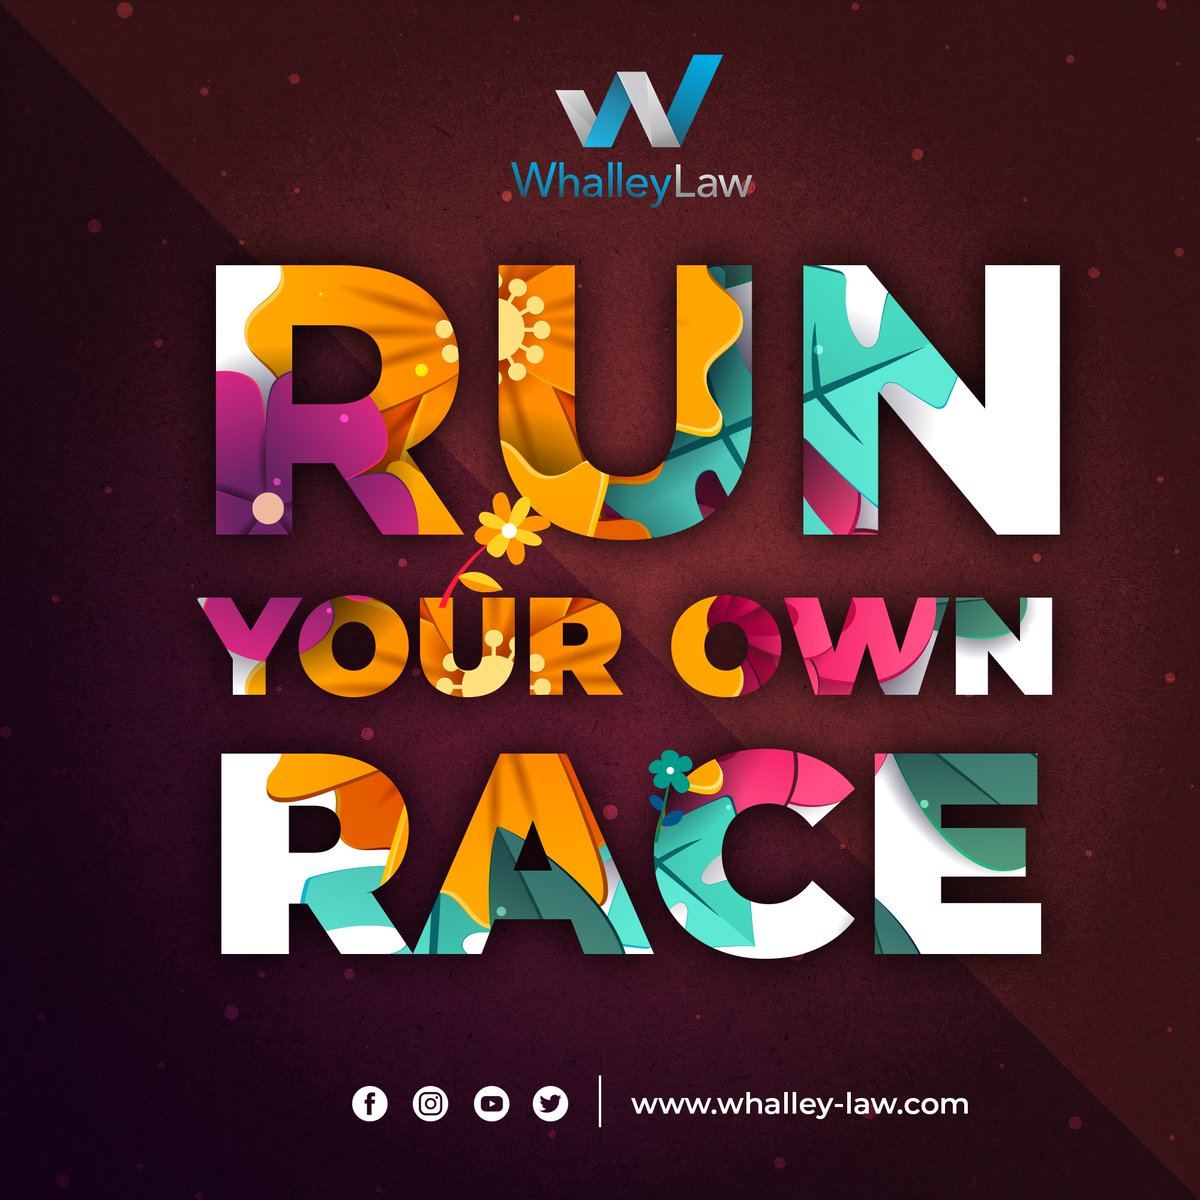 """""""When you run your own race do not worry about the next person's pace, mind yours, after all this is your own race, not theirs.""""😊 . . . . . #WhalleyLaw #motivation #dailymotivation #motivation101 #attorneyinusa #attorneyatlaw #attorneylife #aceattorney https://t.co/kxasp5blRQ"""